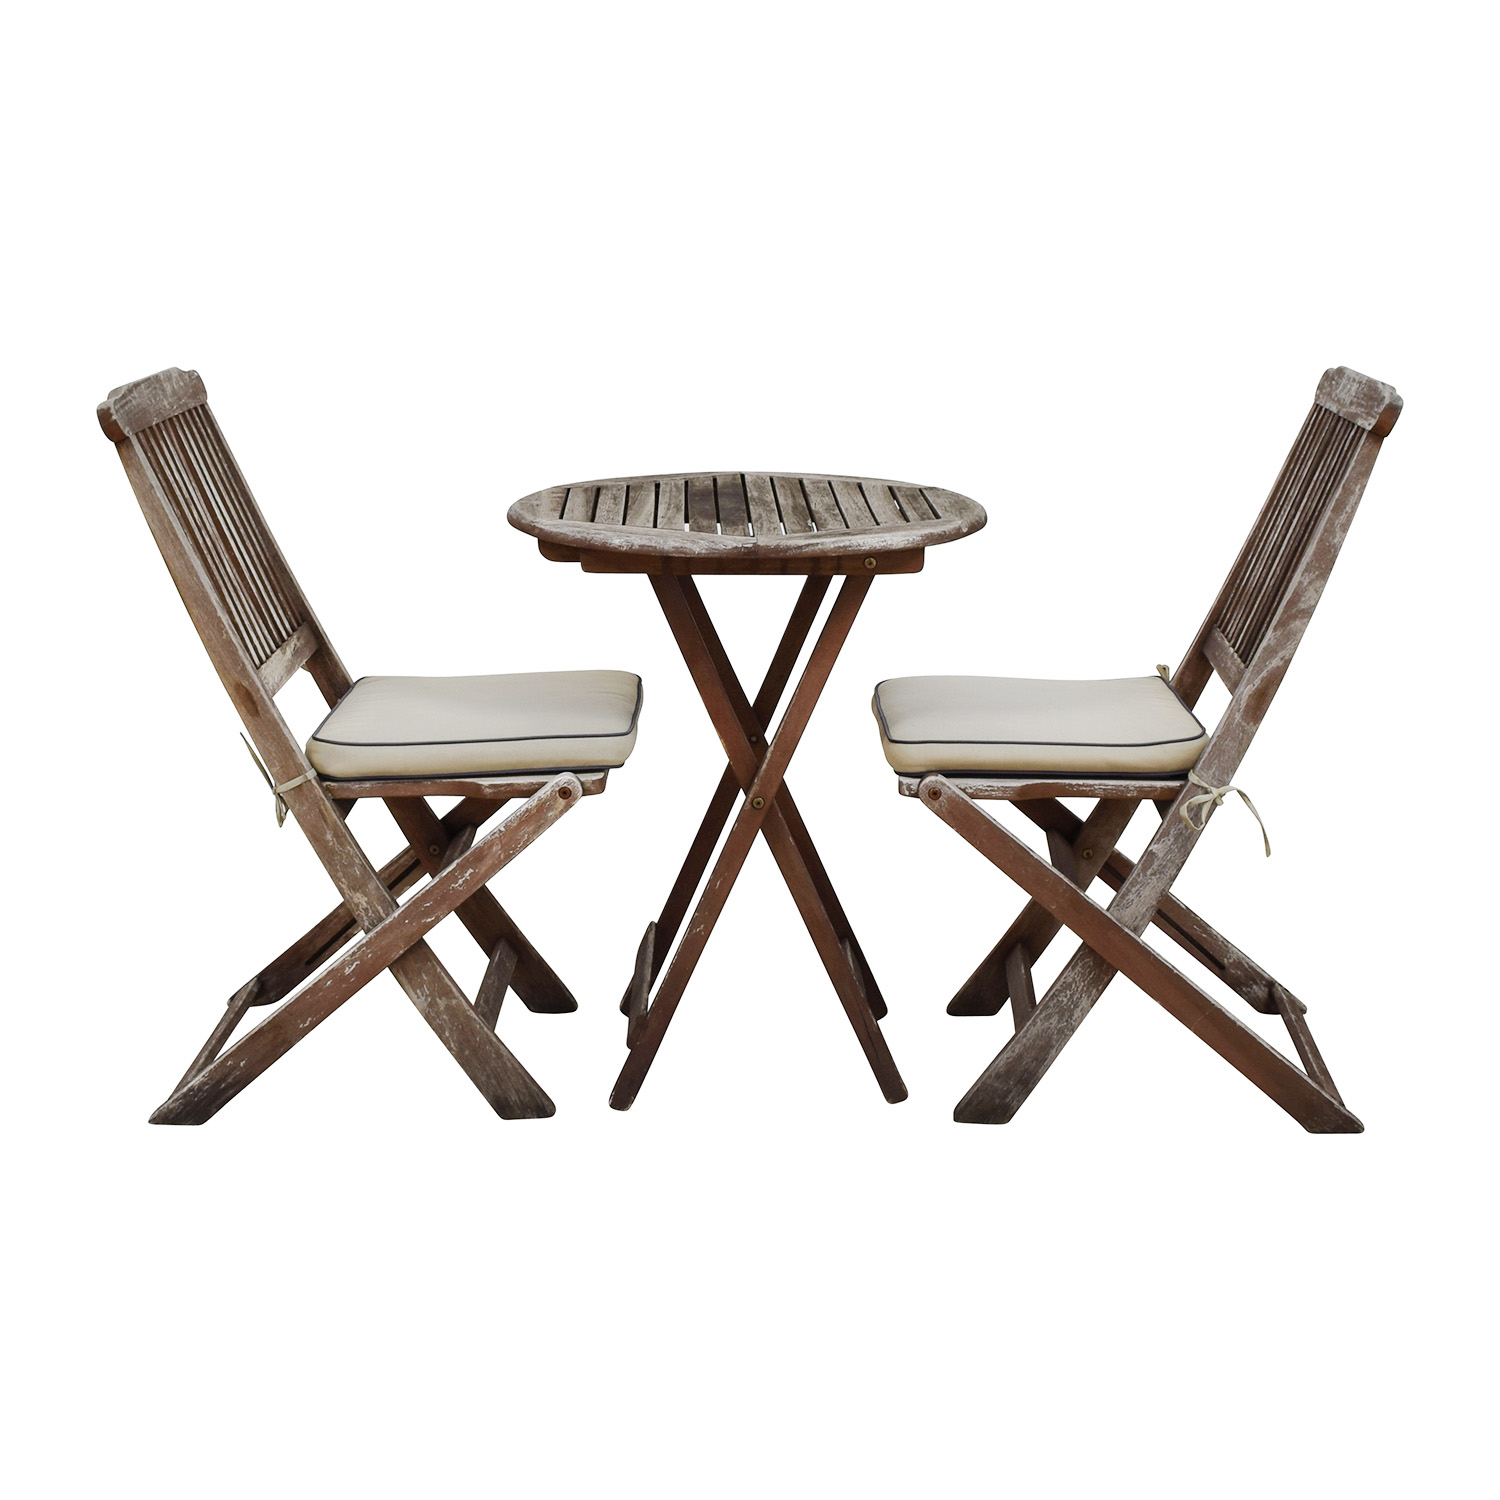 Outdoor Interiors Rustic Patio Dining Table And Chairs Sets